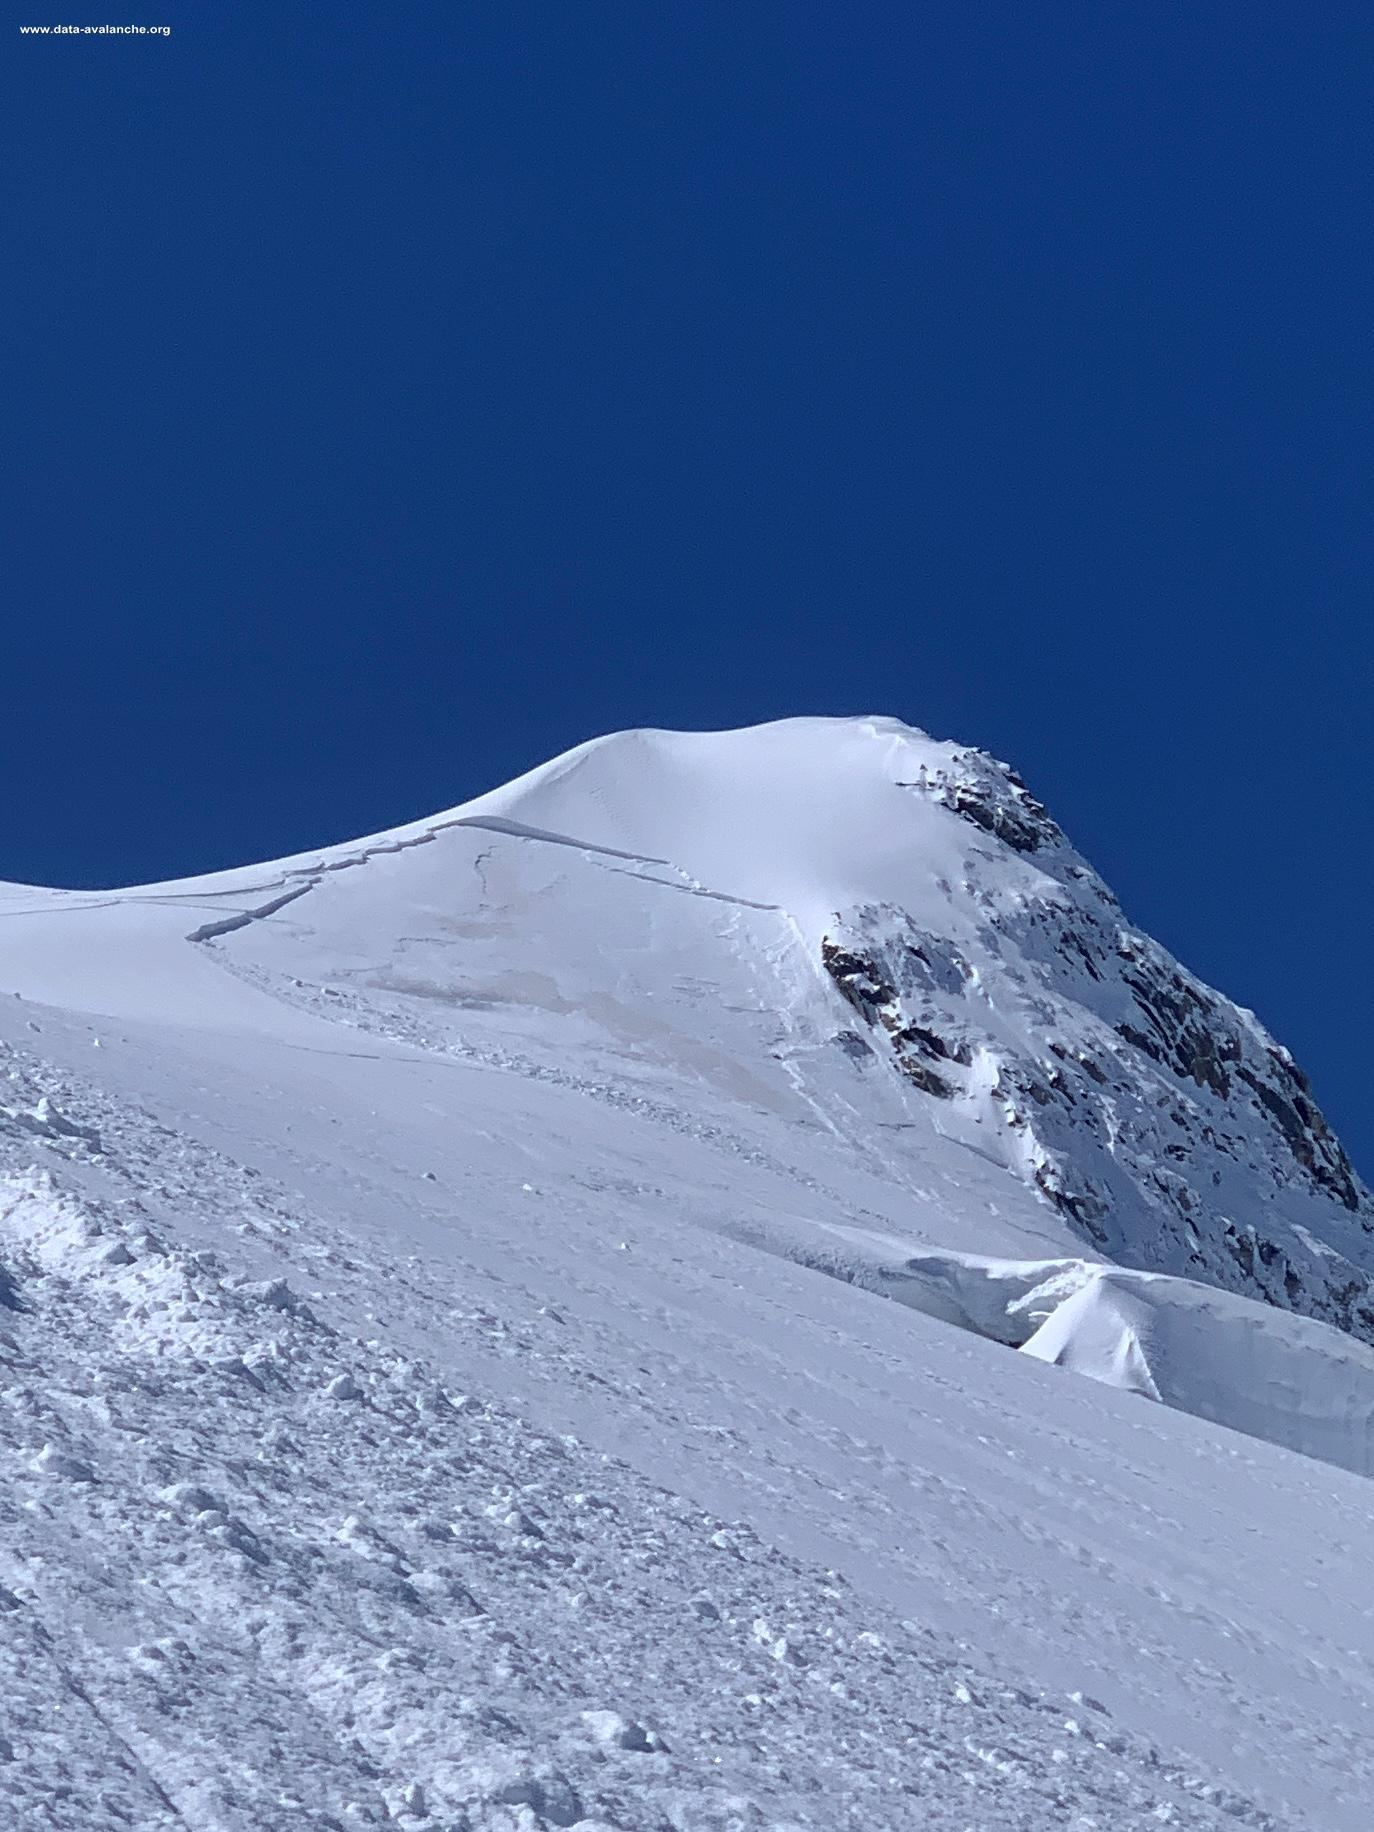 Avalanche Vanoise, secteur Grande Motte, Face Nord Grande Motte - Photo 1 - © Emeric PULCHERIE